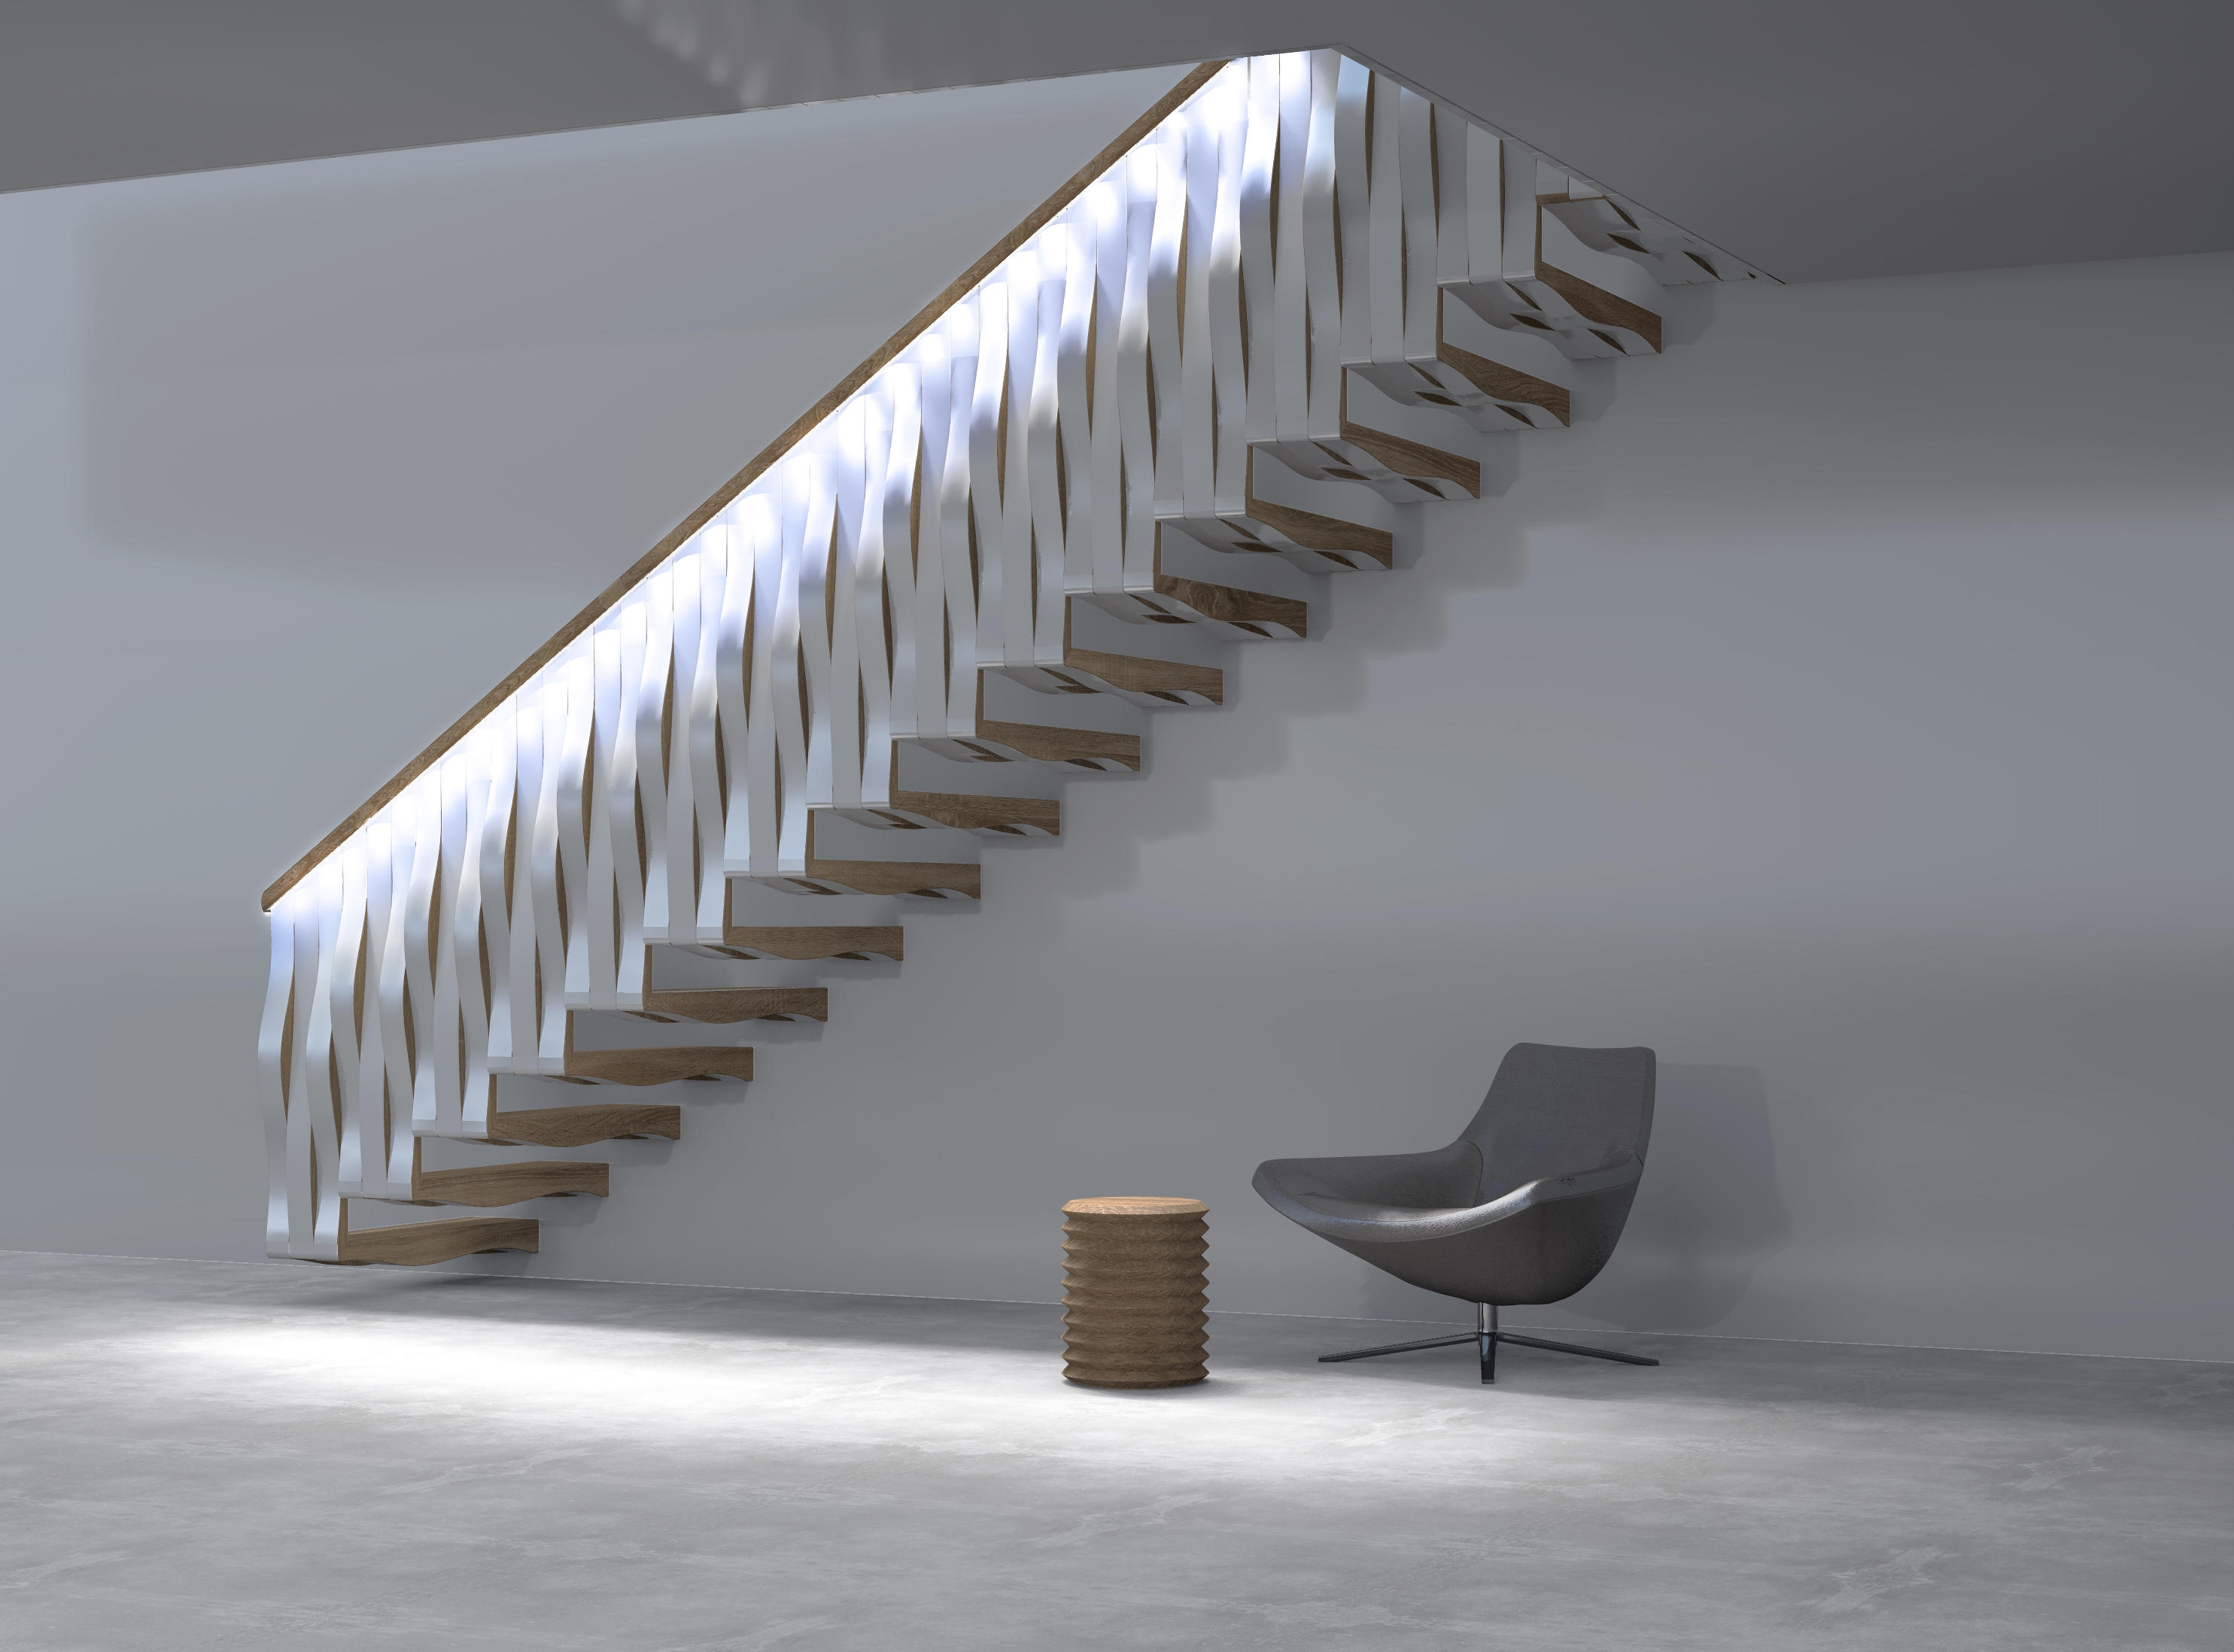 Wave Rail Staircase Systems From Siller Treppen Architonic | Chair Rail On Stairs | Double | Traditional | Stained Wood | Remodeling | Wainscoting